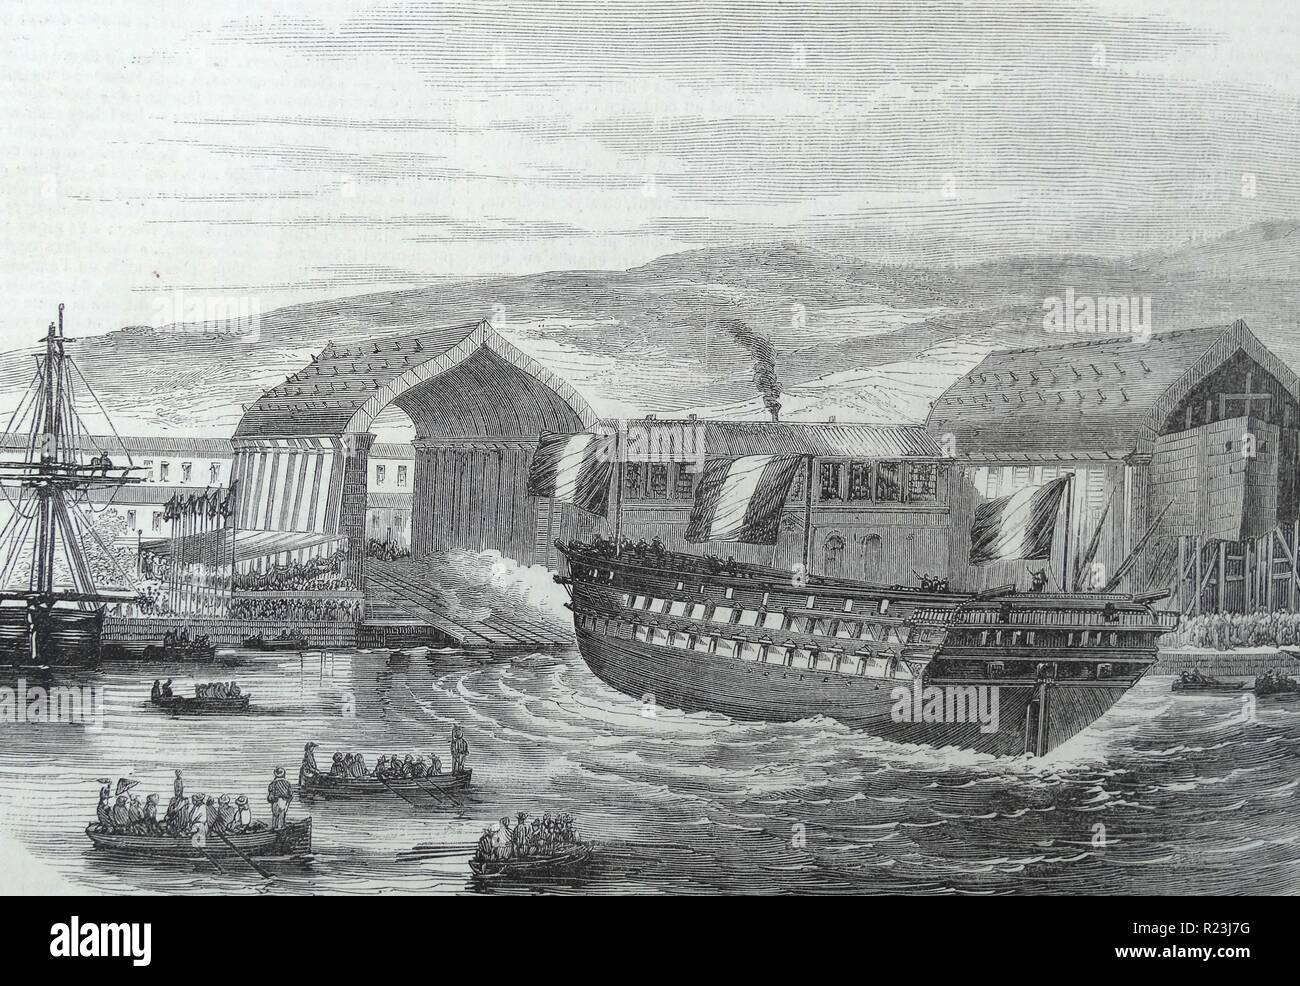 Illustration depicting a French ship being launched from a dock, France. Dated 1873 - Stock Image